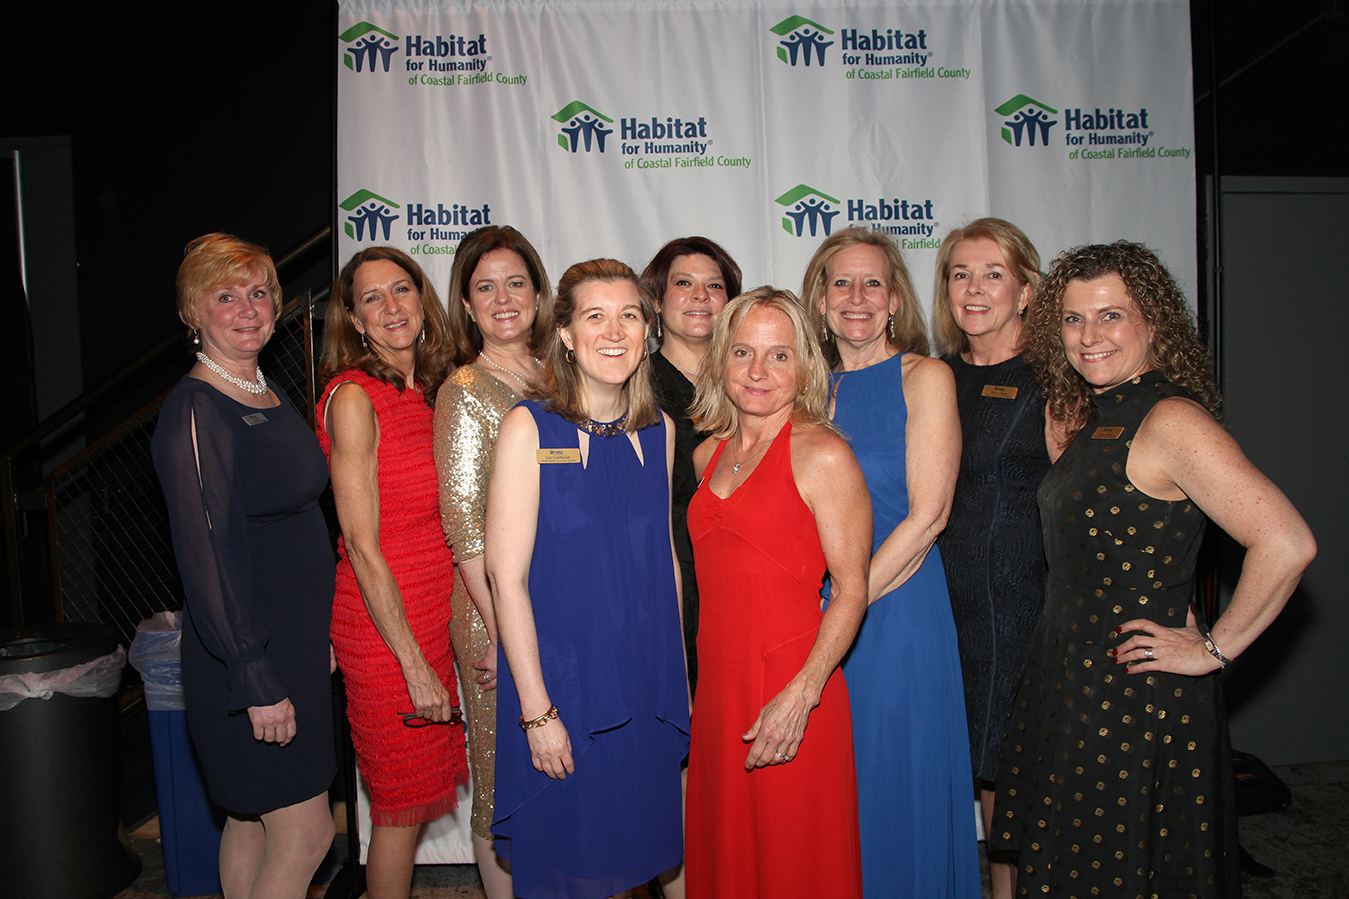 Women Build (left to right):Eileen Bakos, Amy Gillis, Mella Kernan, Lisa Goldbecker, Andrea Stone, Amy Nagy, Lorrie Stapleton, Barbara Regan, Kristin Pereira